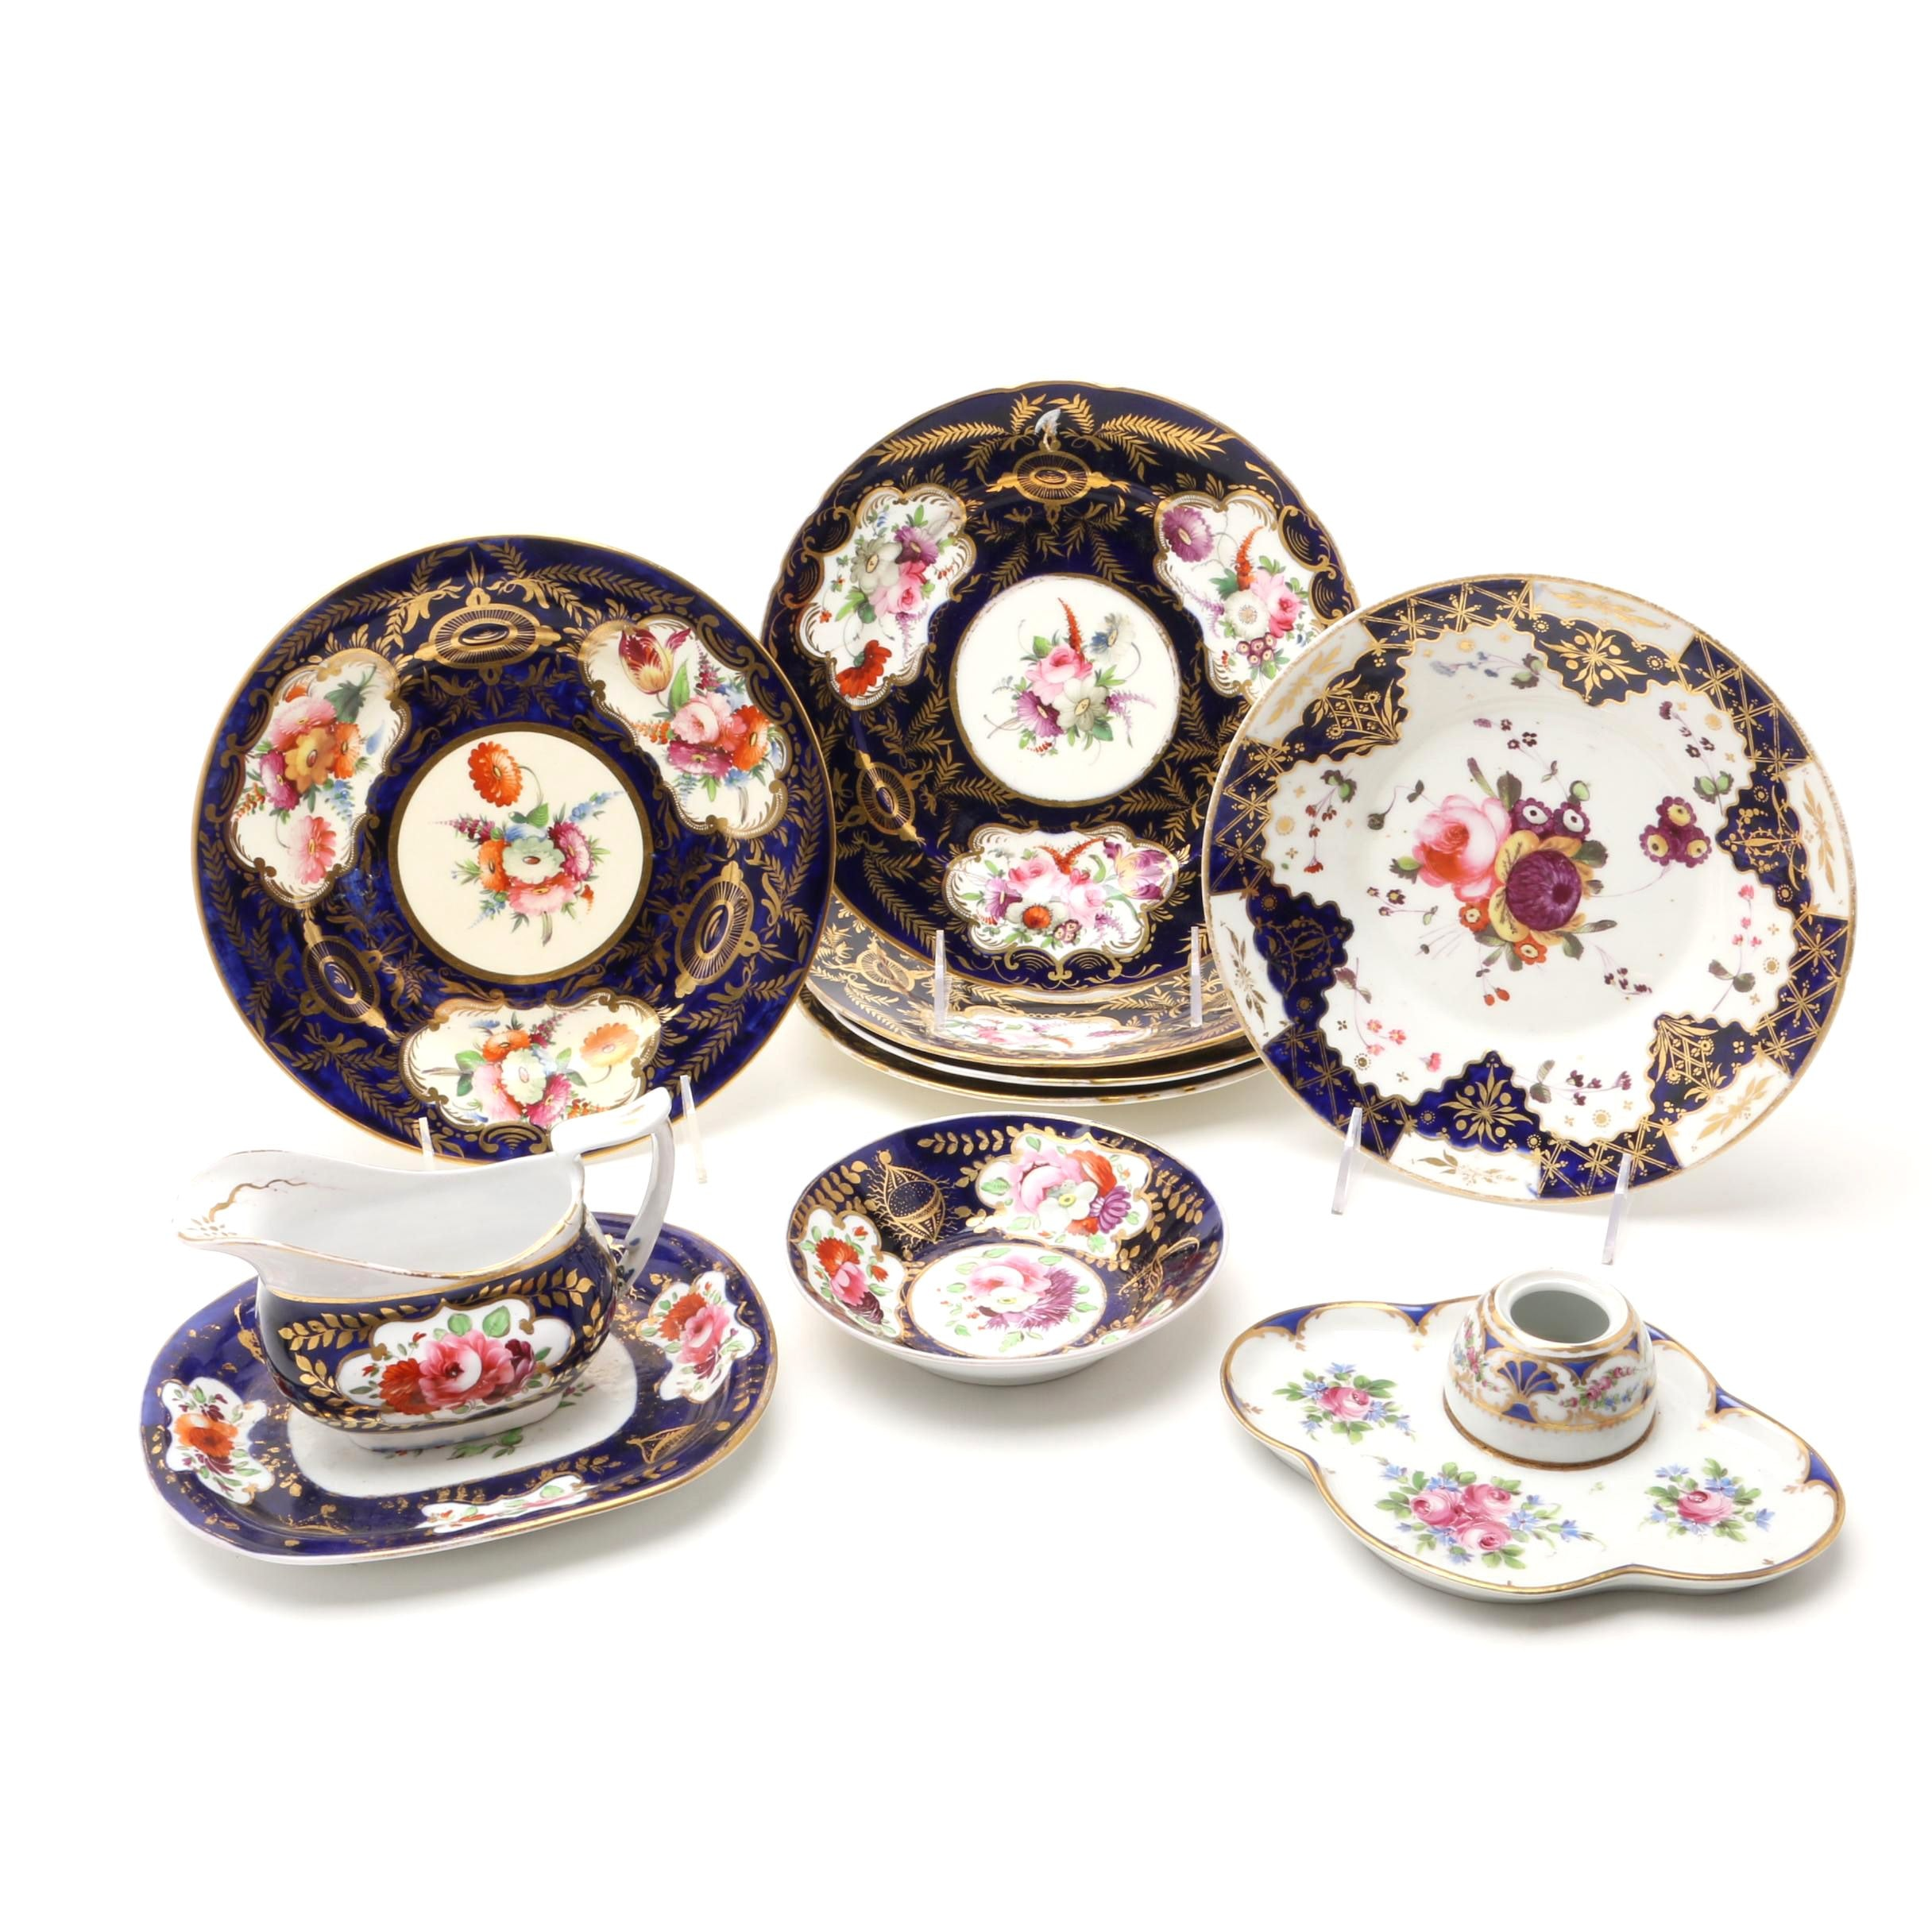 Collection of English and French Porcelain Tableware, 19th/20th Century